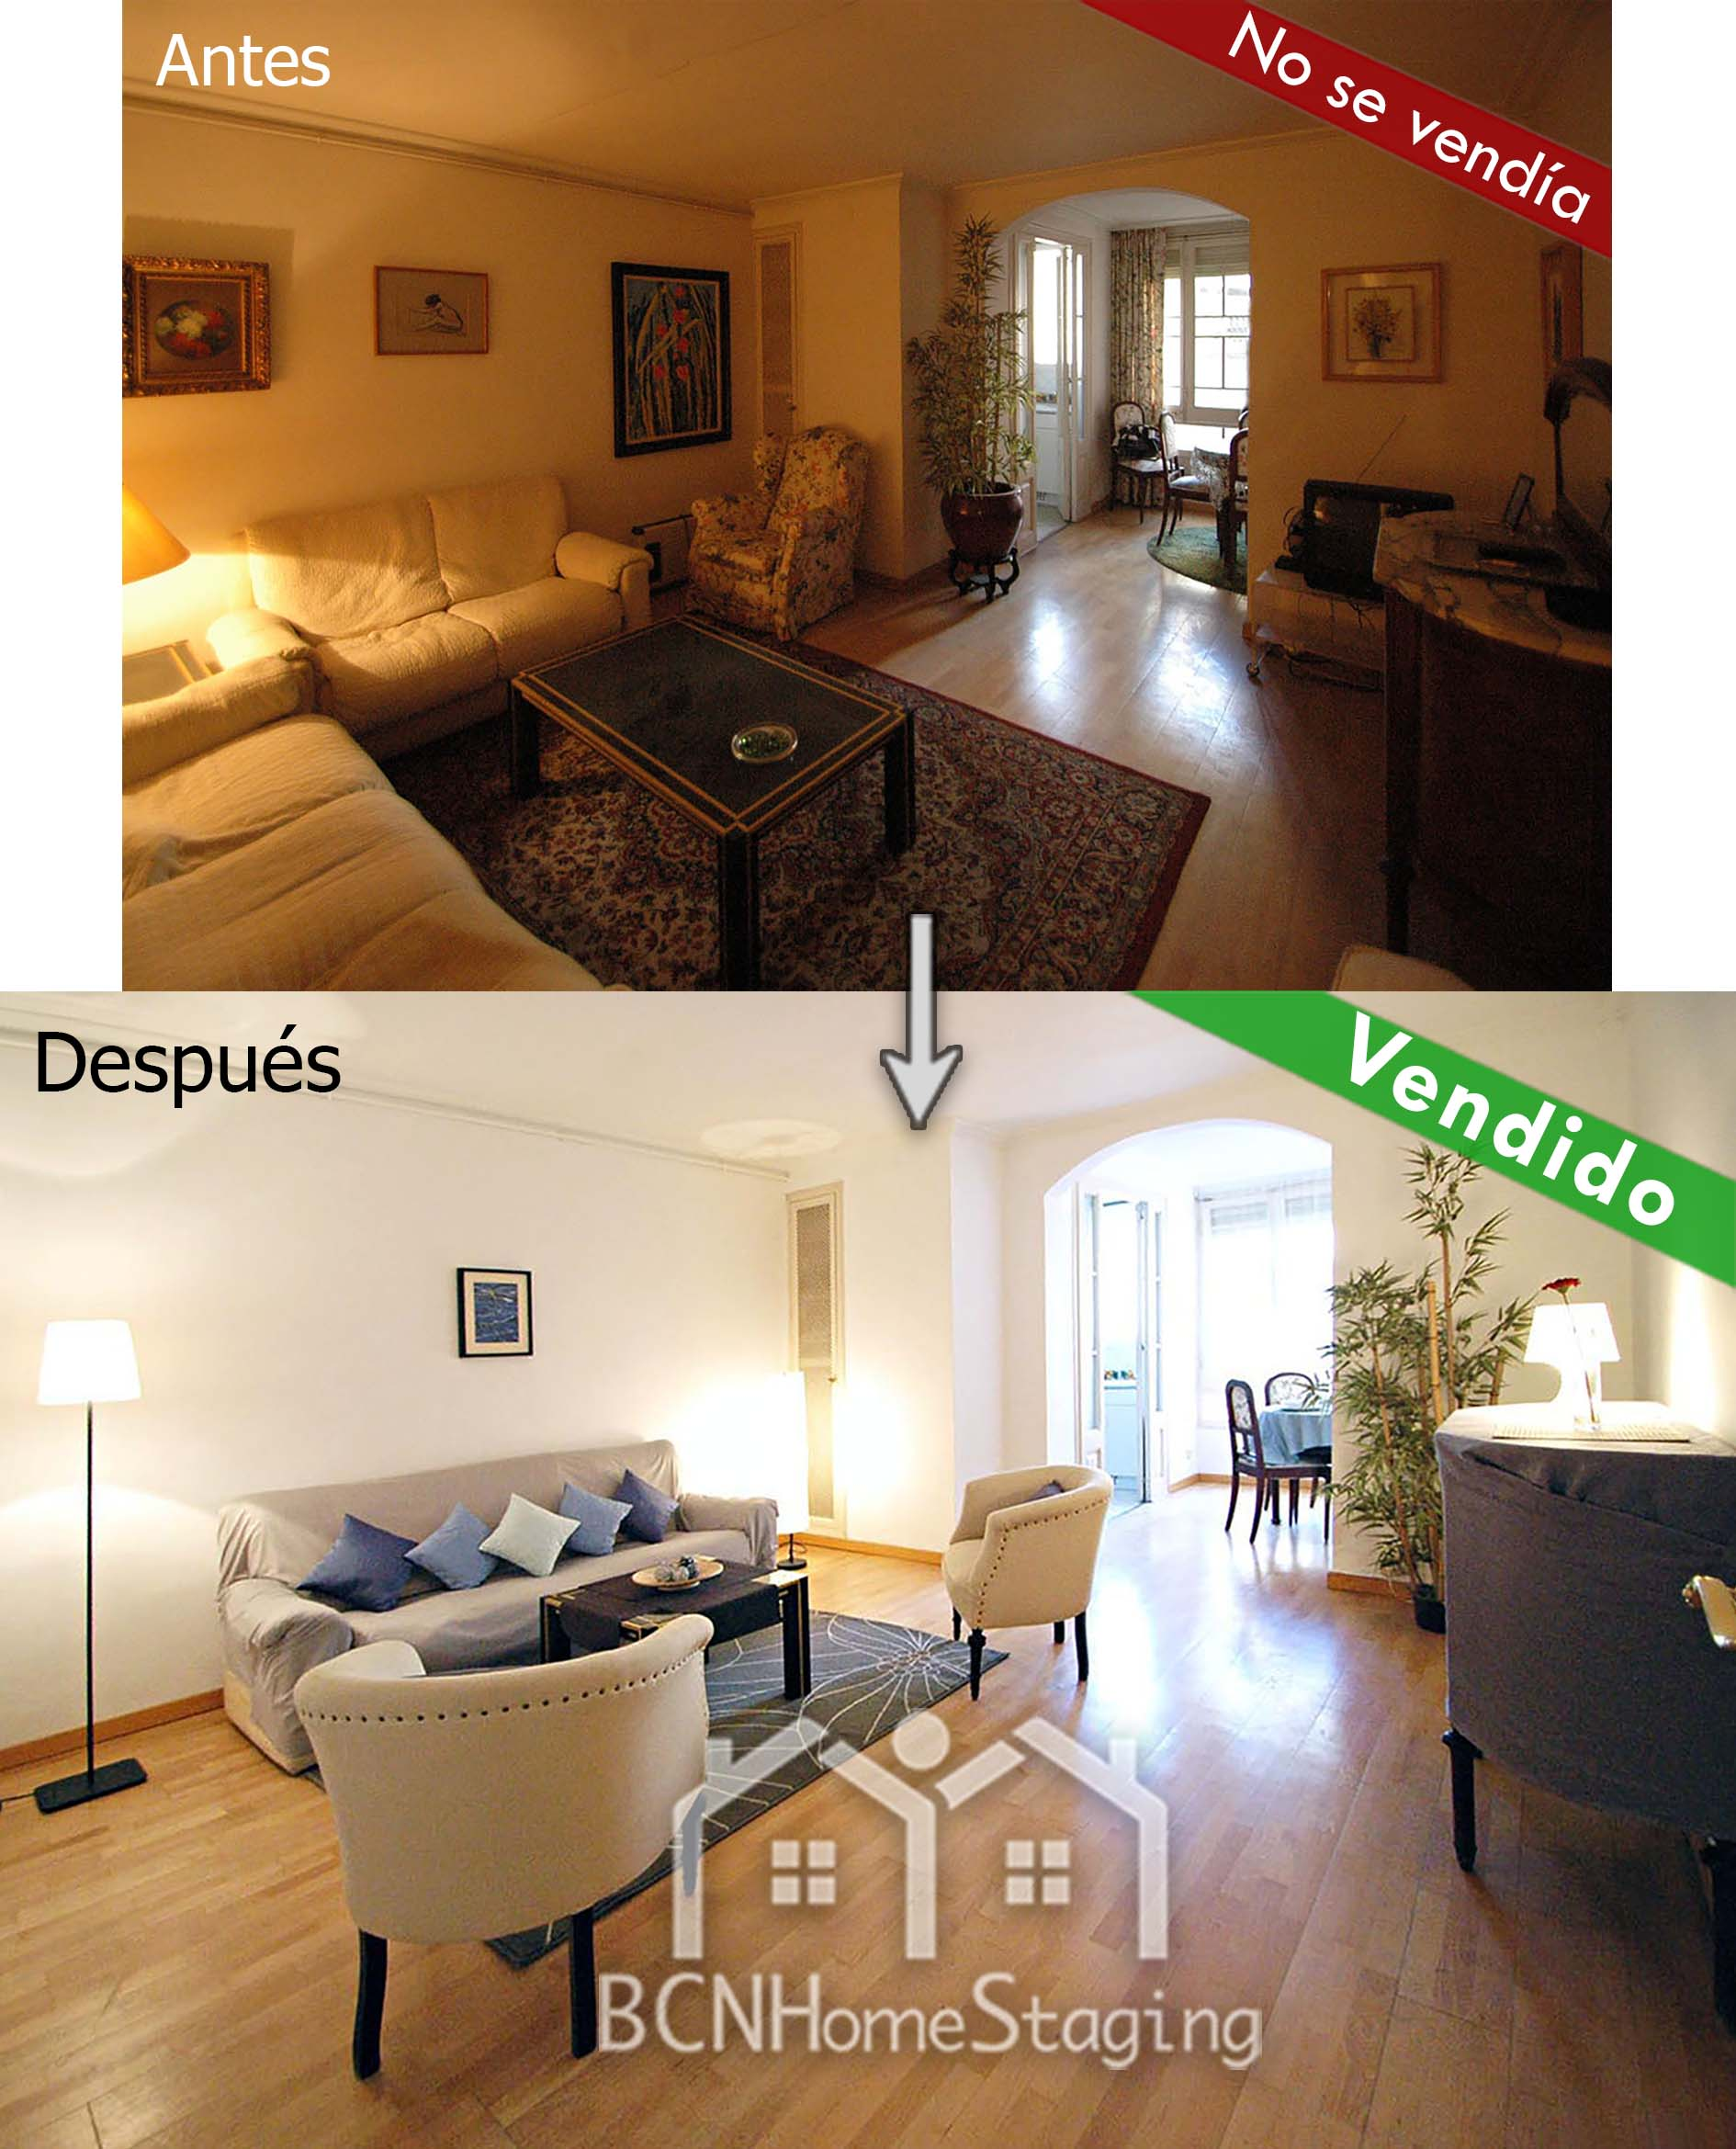 Foto: BCN Home Staging